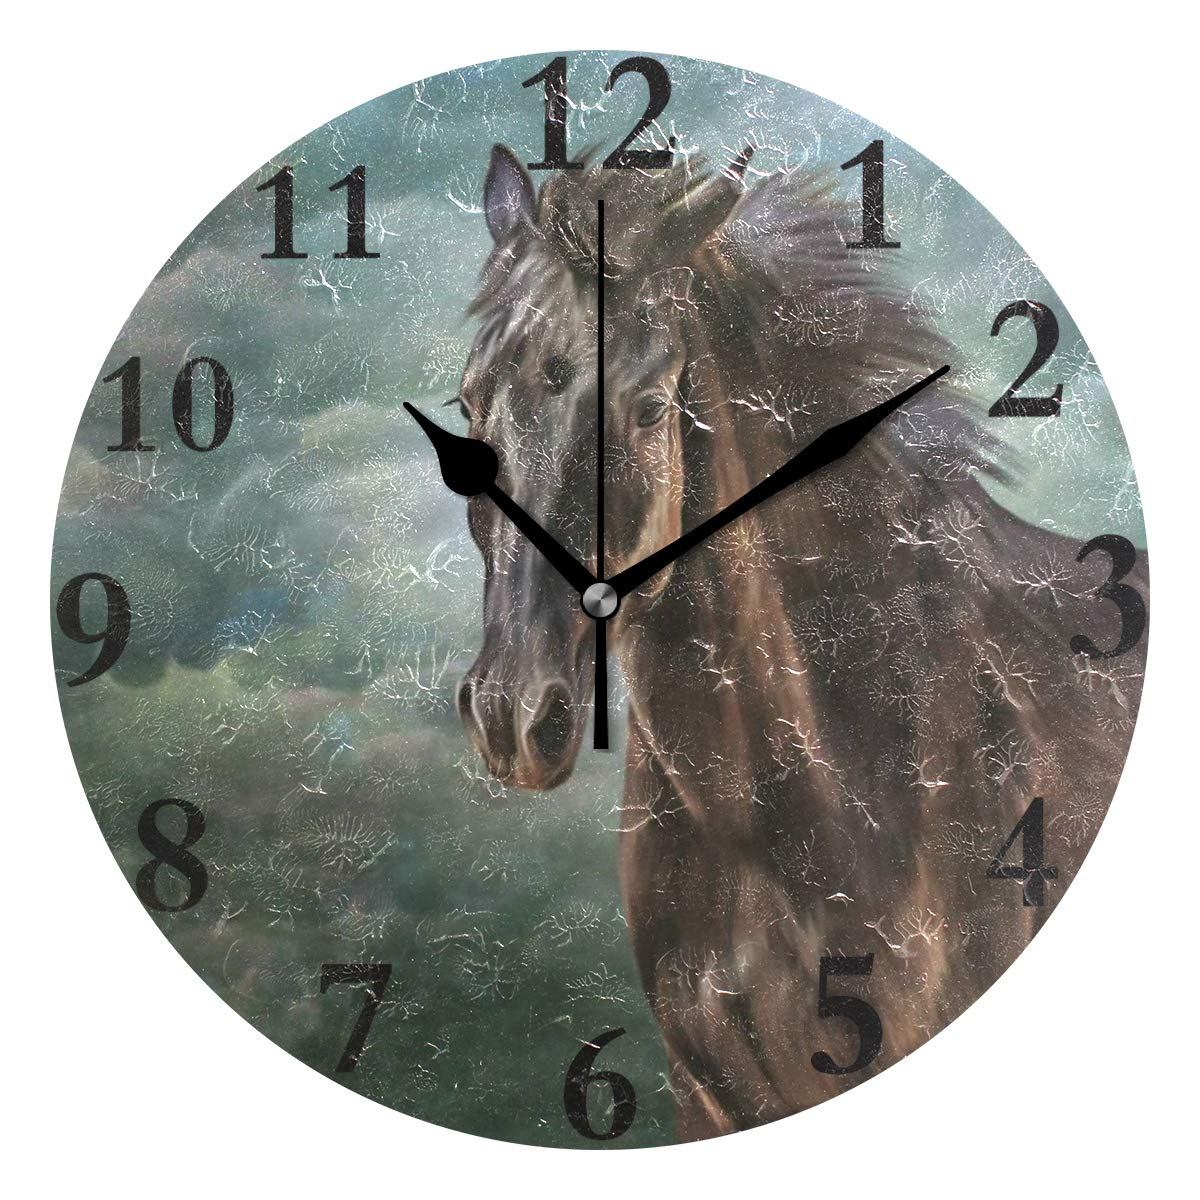 Ladninag Wall Clock Vintage Cute Horse Animal Sky Clouds Silent Non Ticking Decorative Round Digital Clocks Indoor Outdoor Kitchen Bedroom Living Room